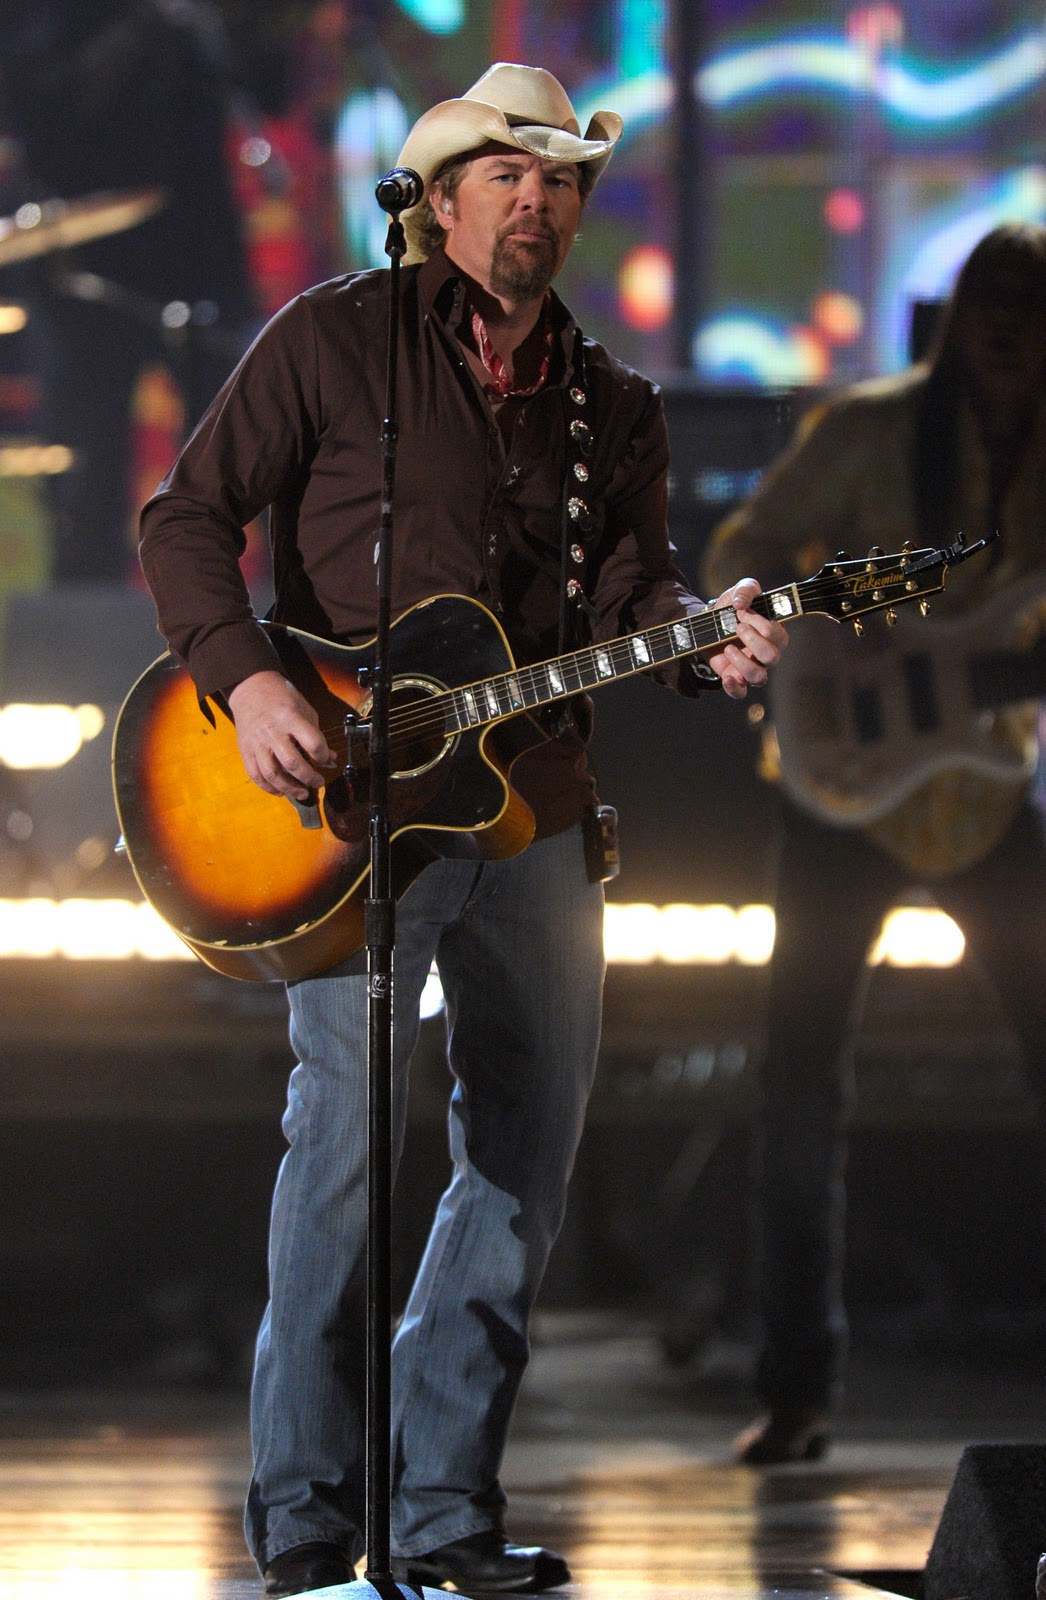 MORE Photos: ACM Awards Performers   Country Music Rocks